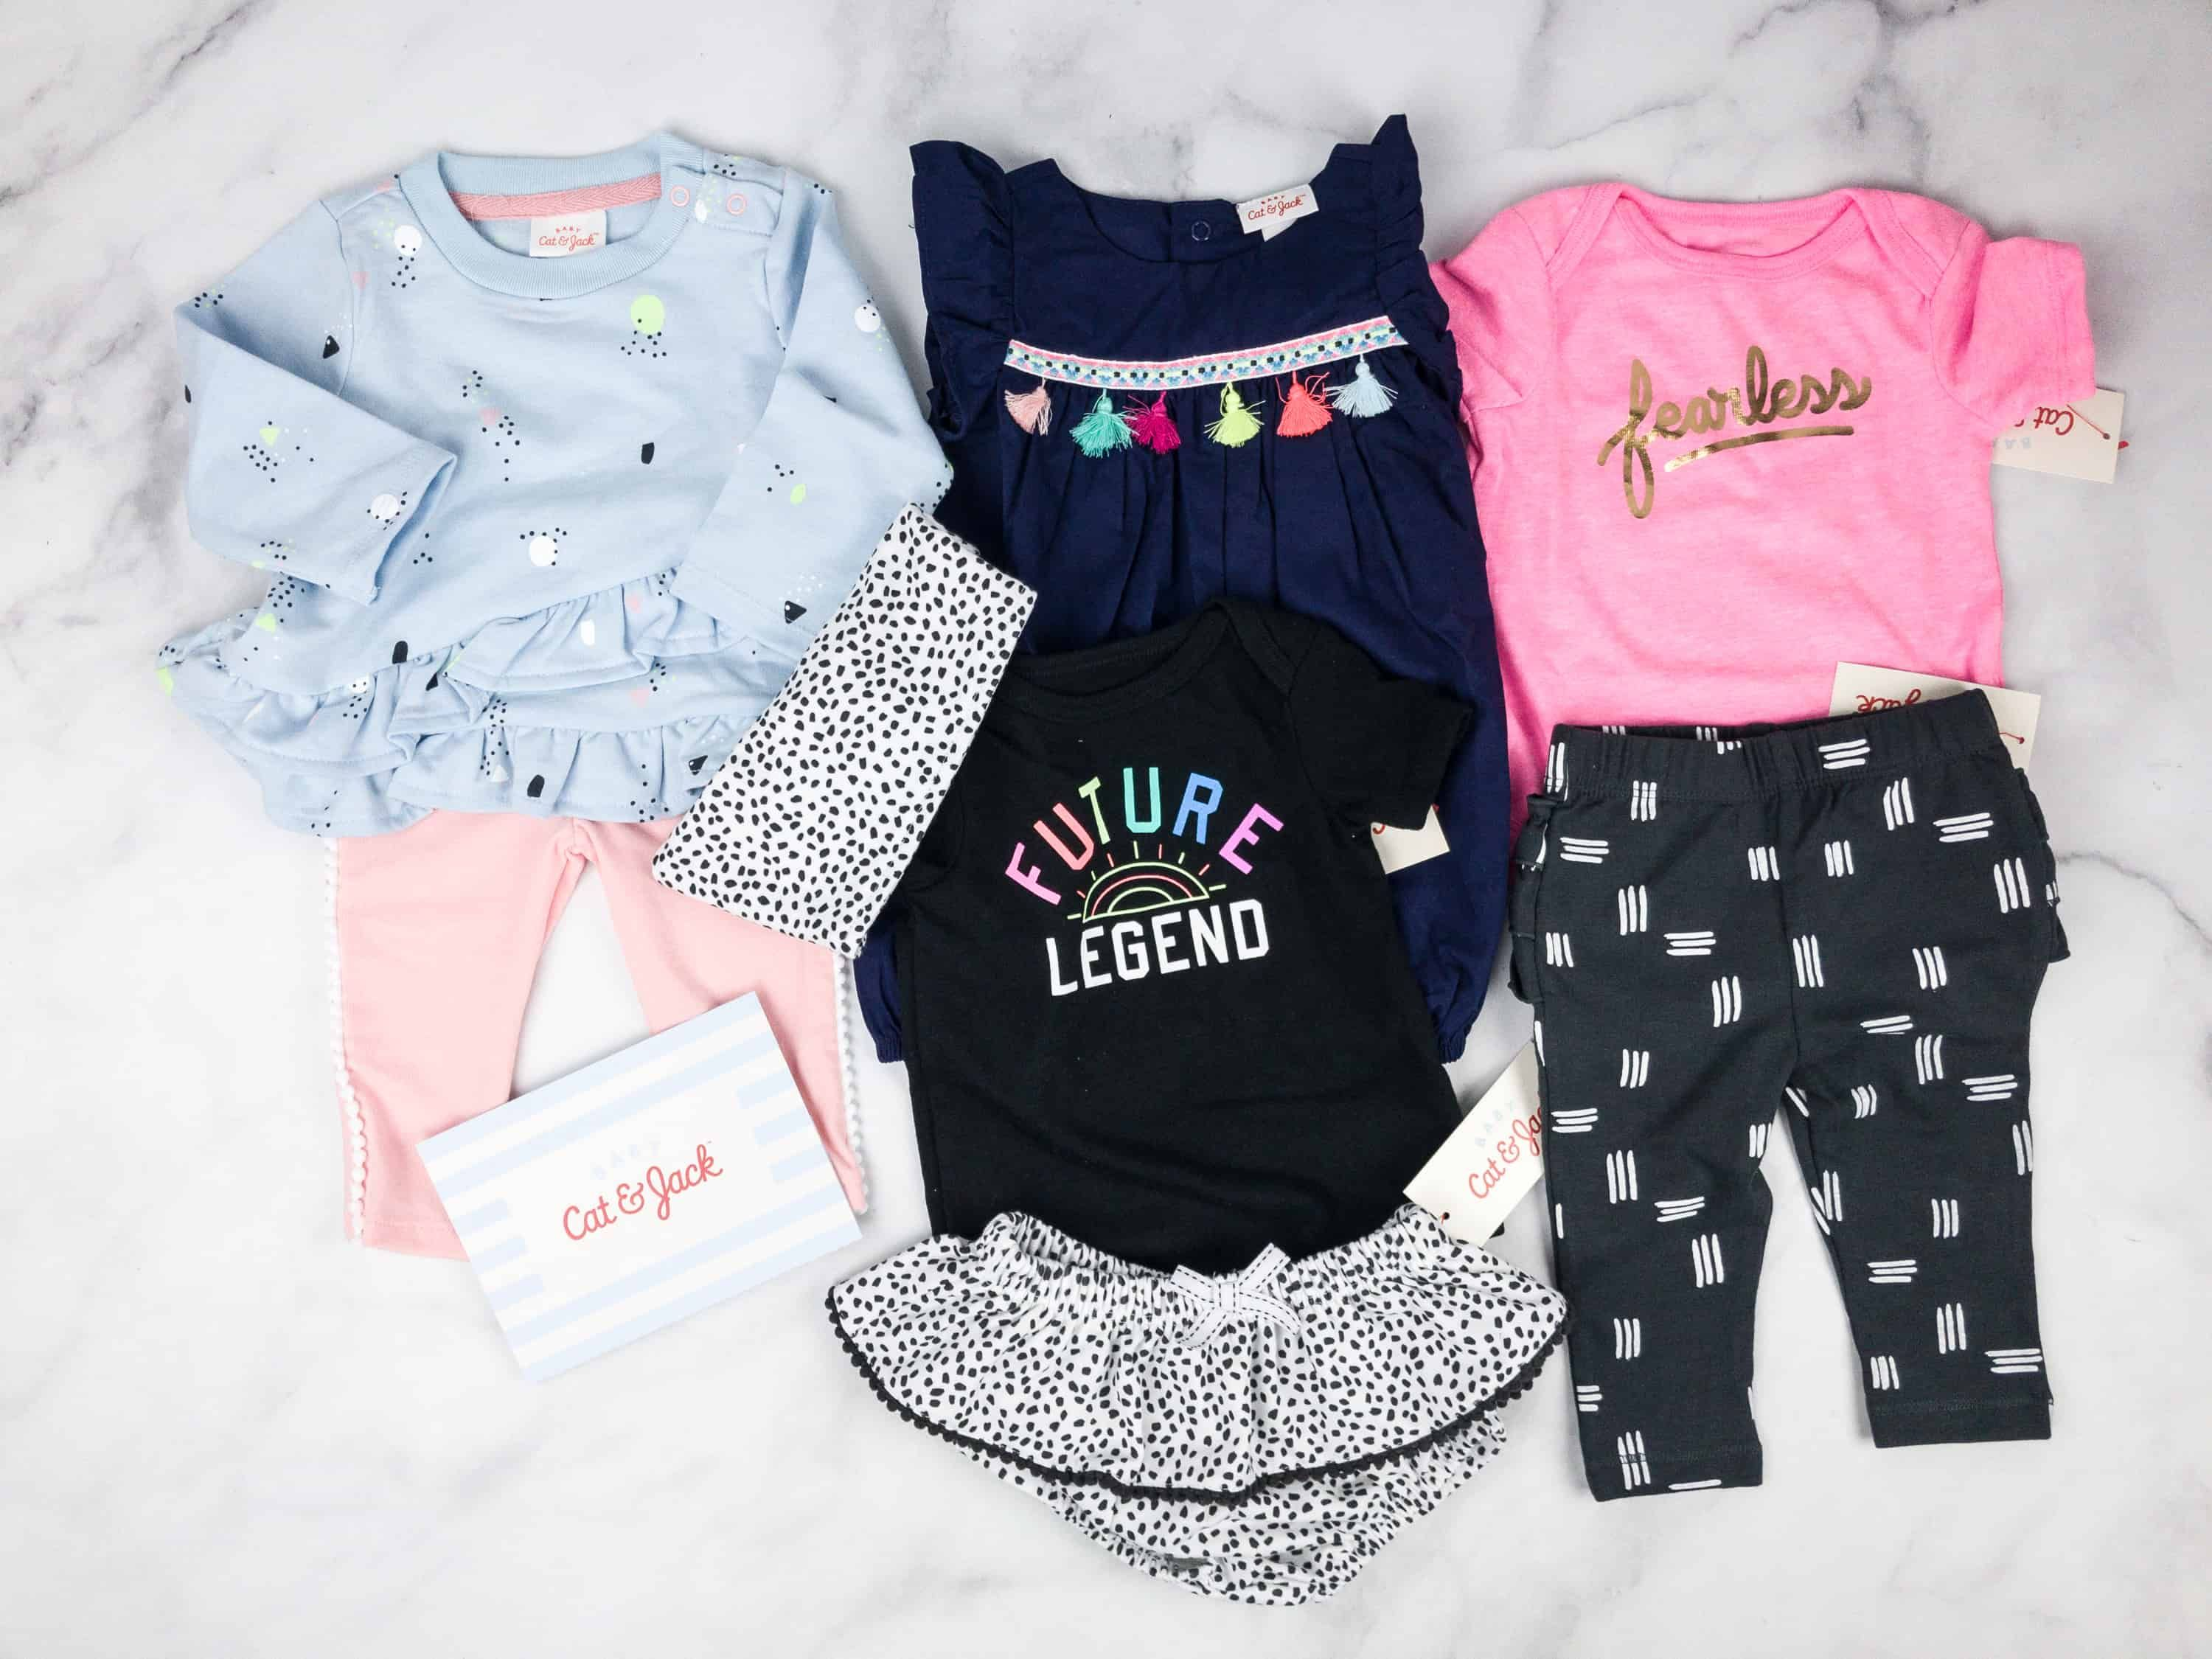 40b850f75900 Cat  amp  Jack Baby Outfit Box is a new baby clothing subscription from  Target.